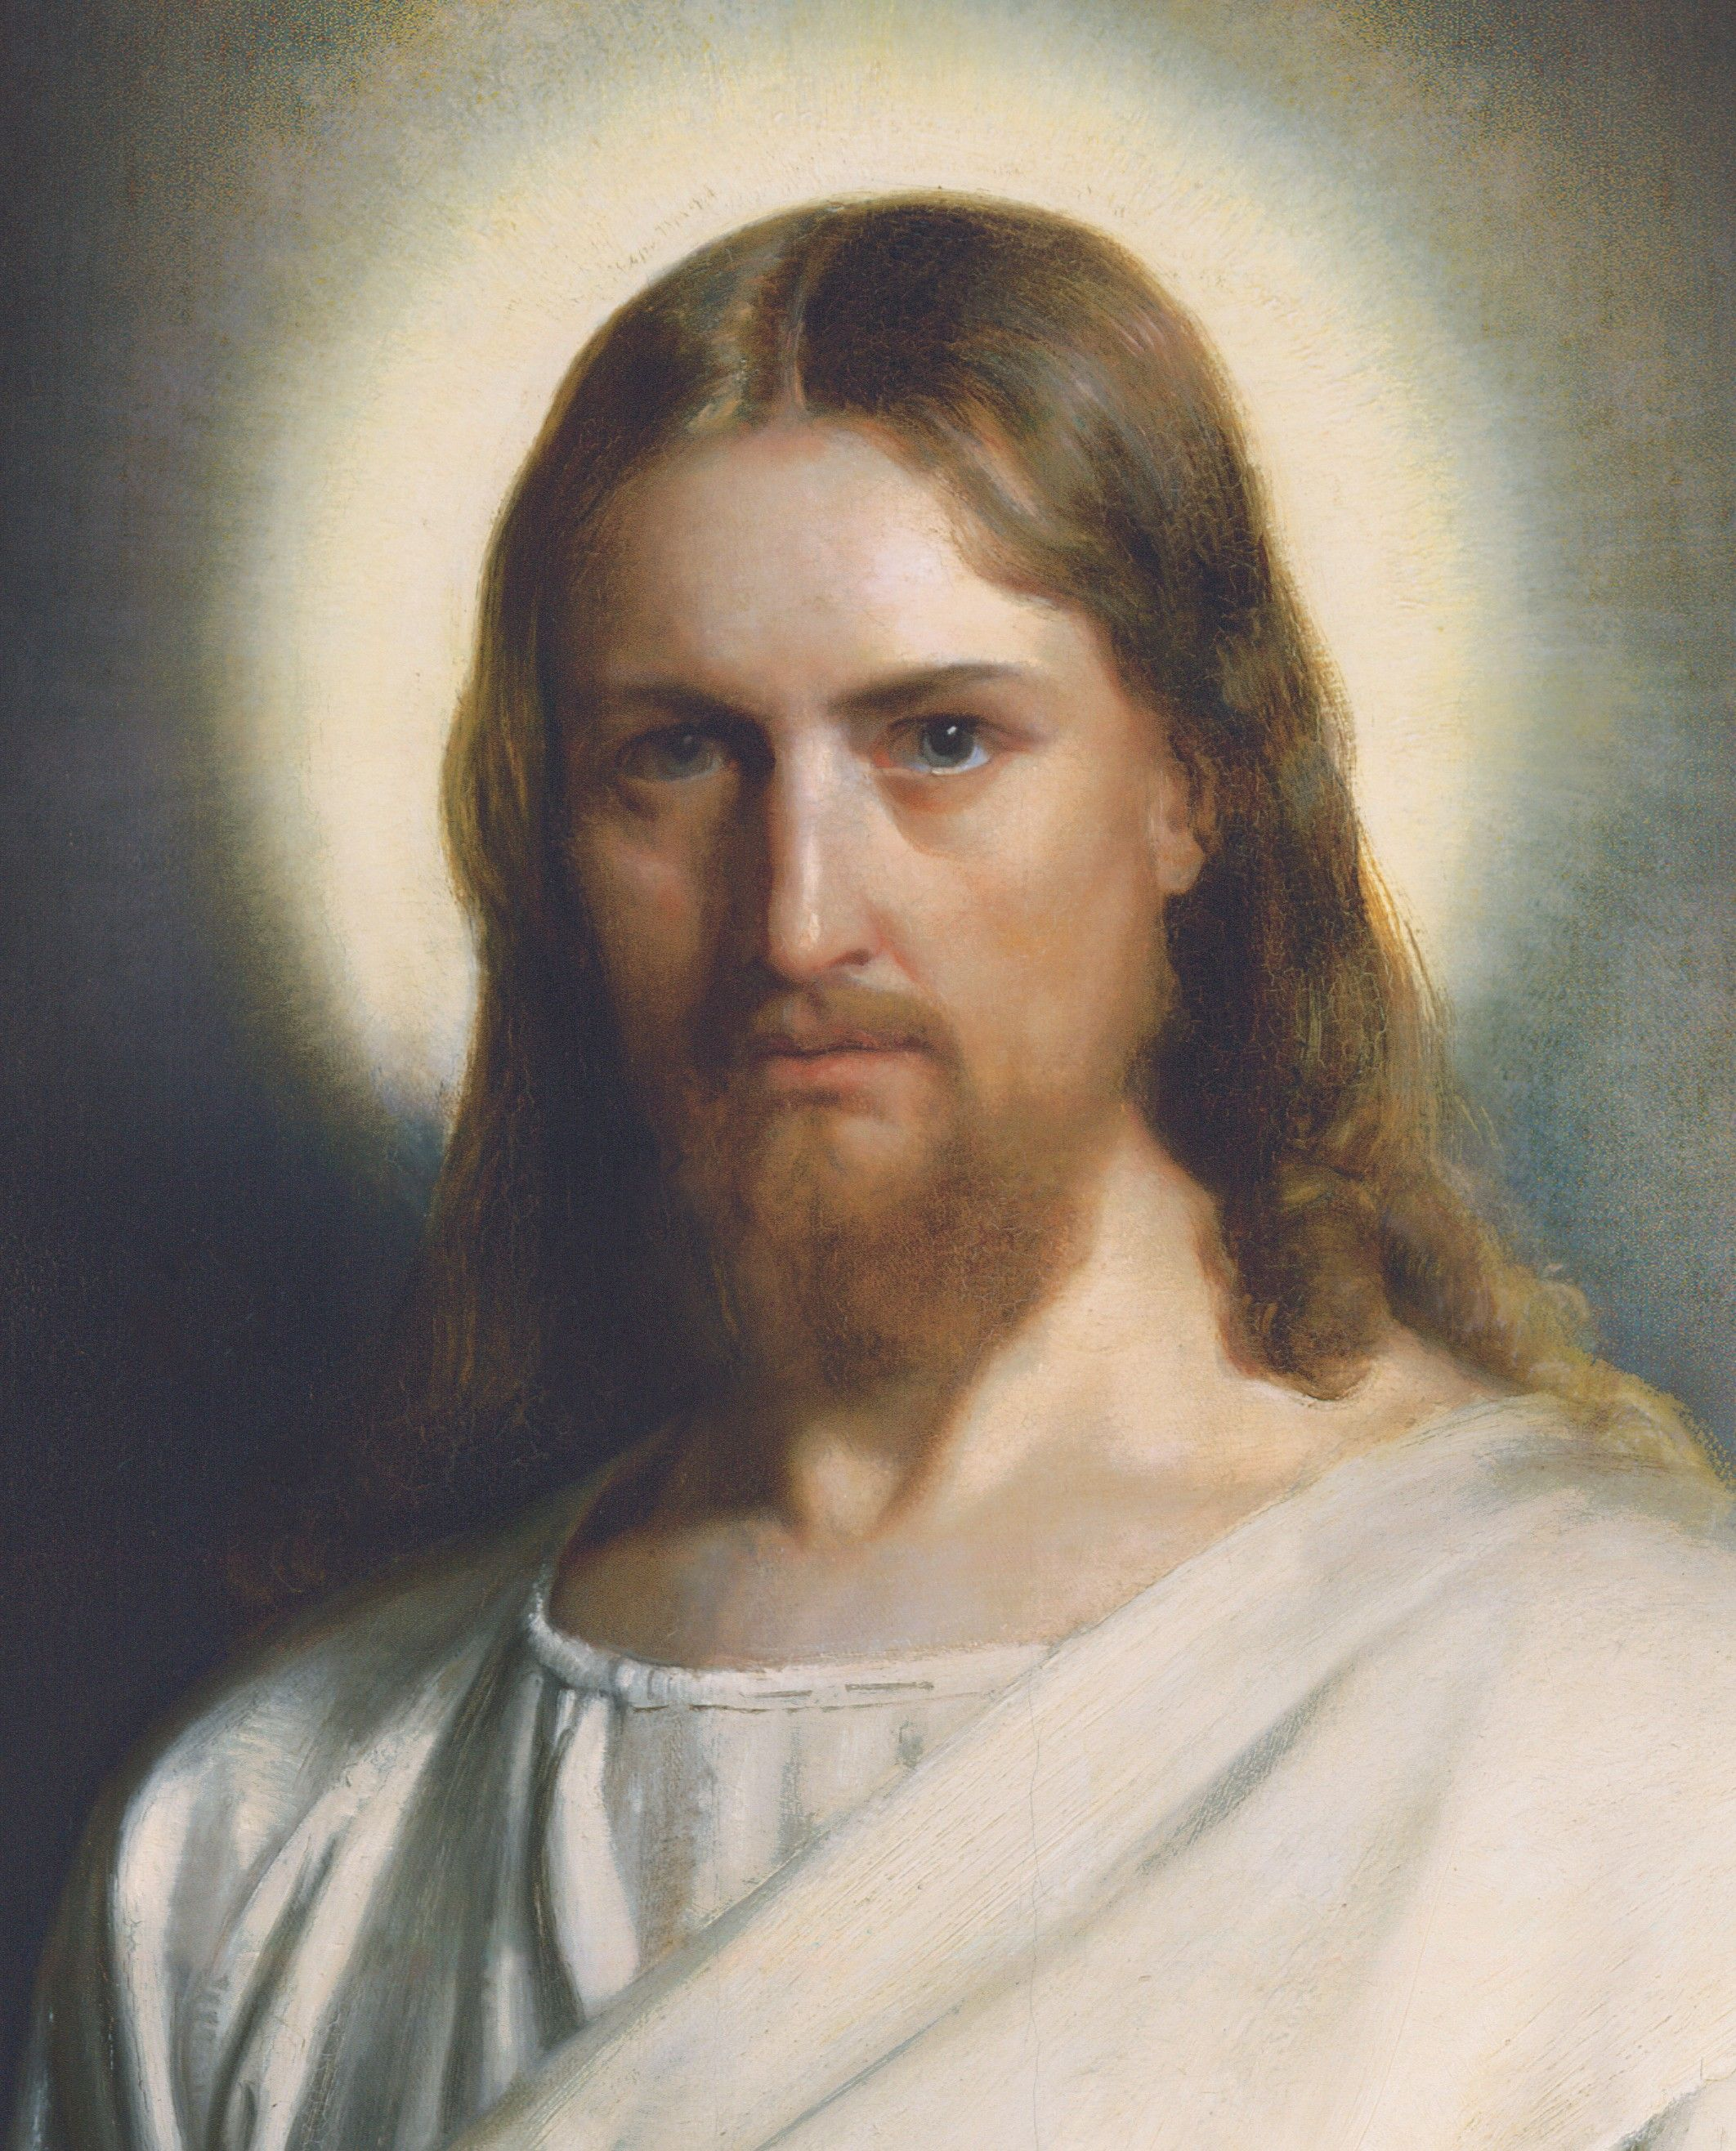 Detail from the painting Christ and the Young Child, by Carl Heinrich Bloch